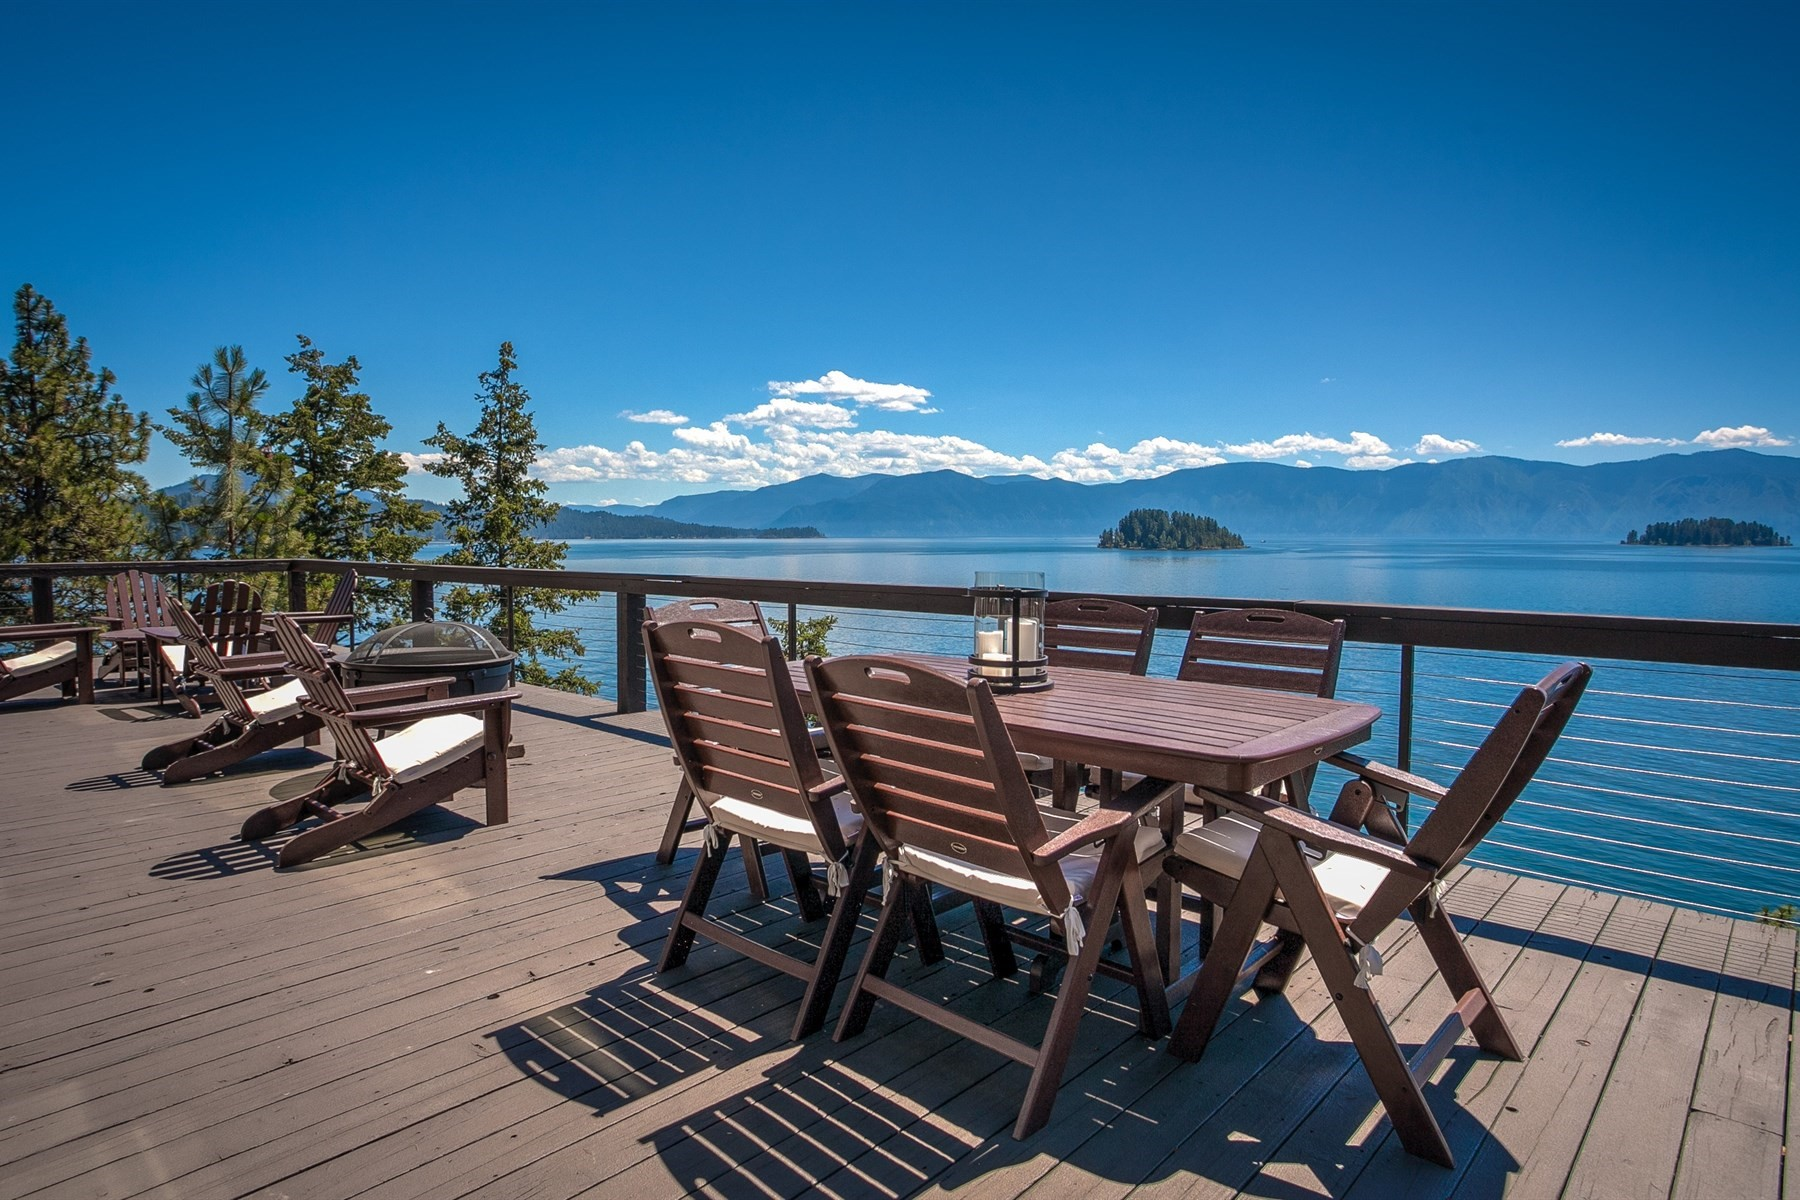 Single Family Home for Active at Exclusive Island Playcation 795 Warren Island Shore Hope, Idaho 83836 United States